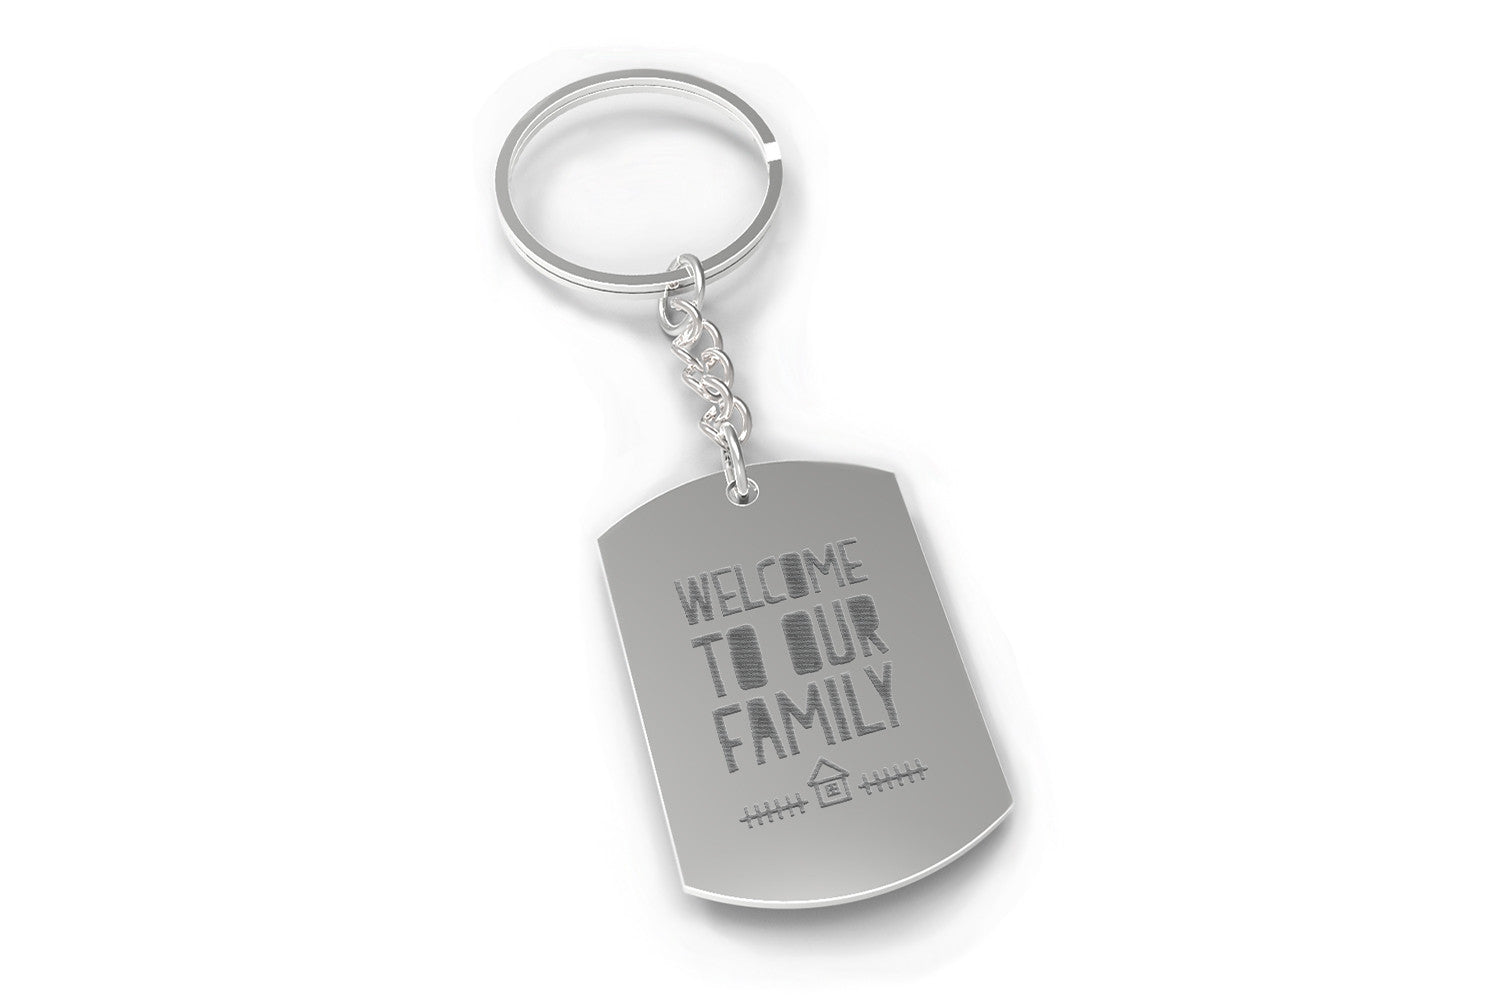 Welcome To Our Family Key Chain For Daughter In Law Or Son In Law Cute Gift